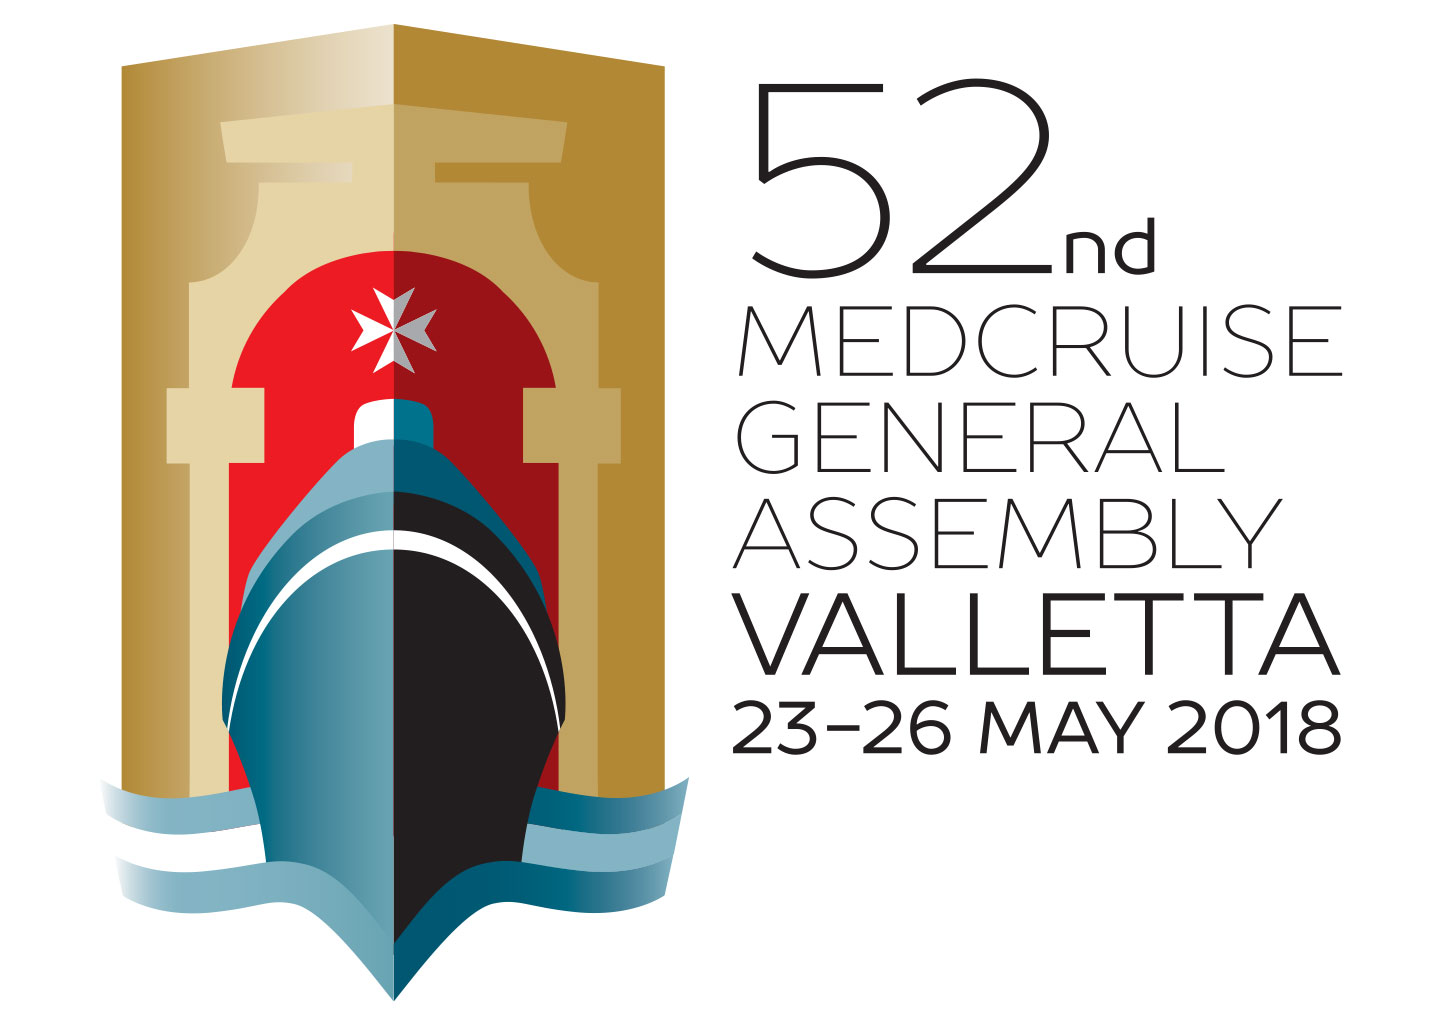 52nd MedCruise General Assembly, Valletta